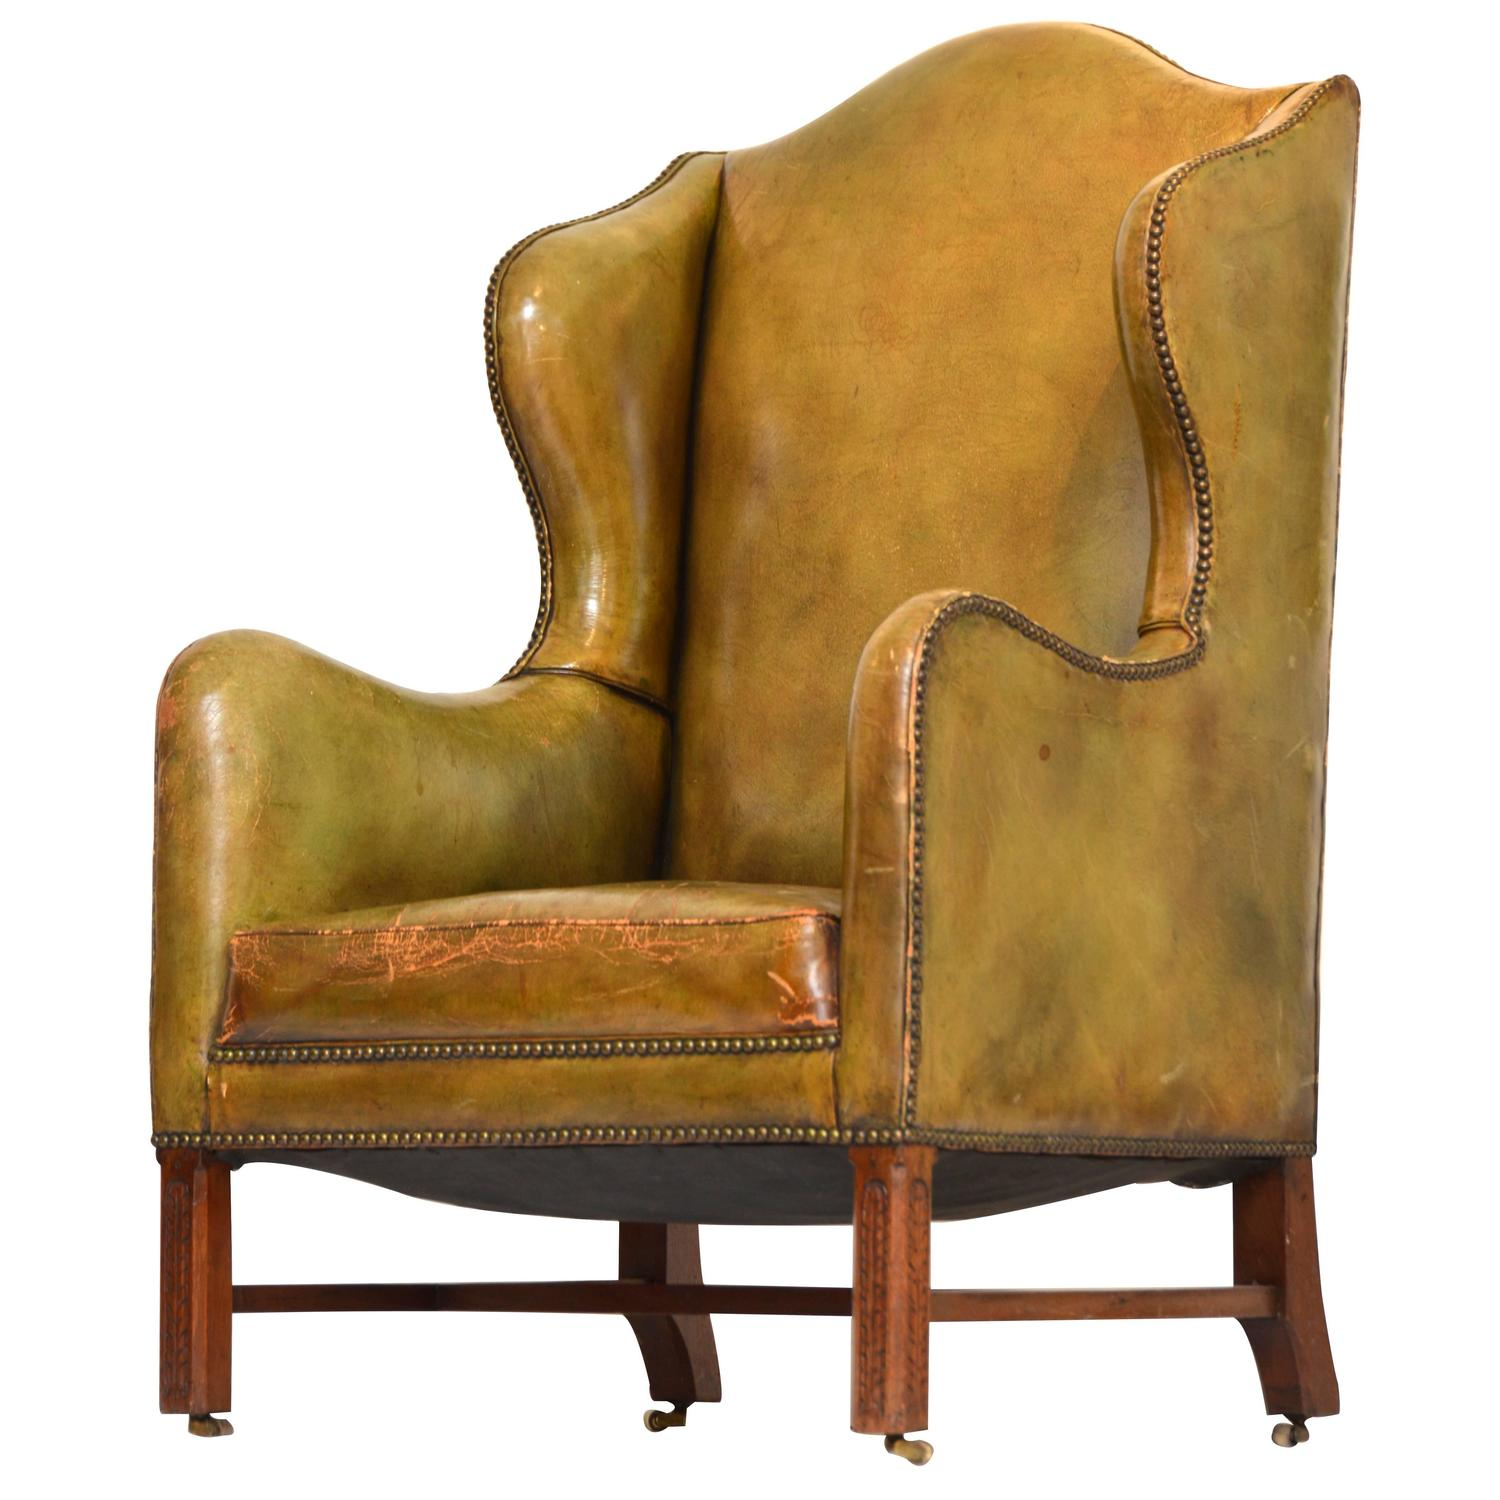 Vintage Green Leather Wing Chair For Sale at 1stdibs